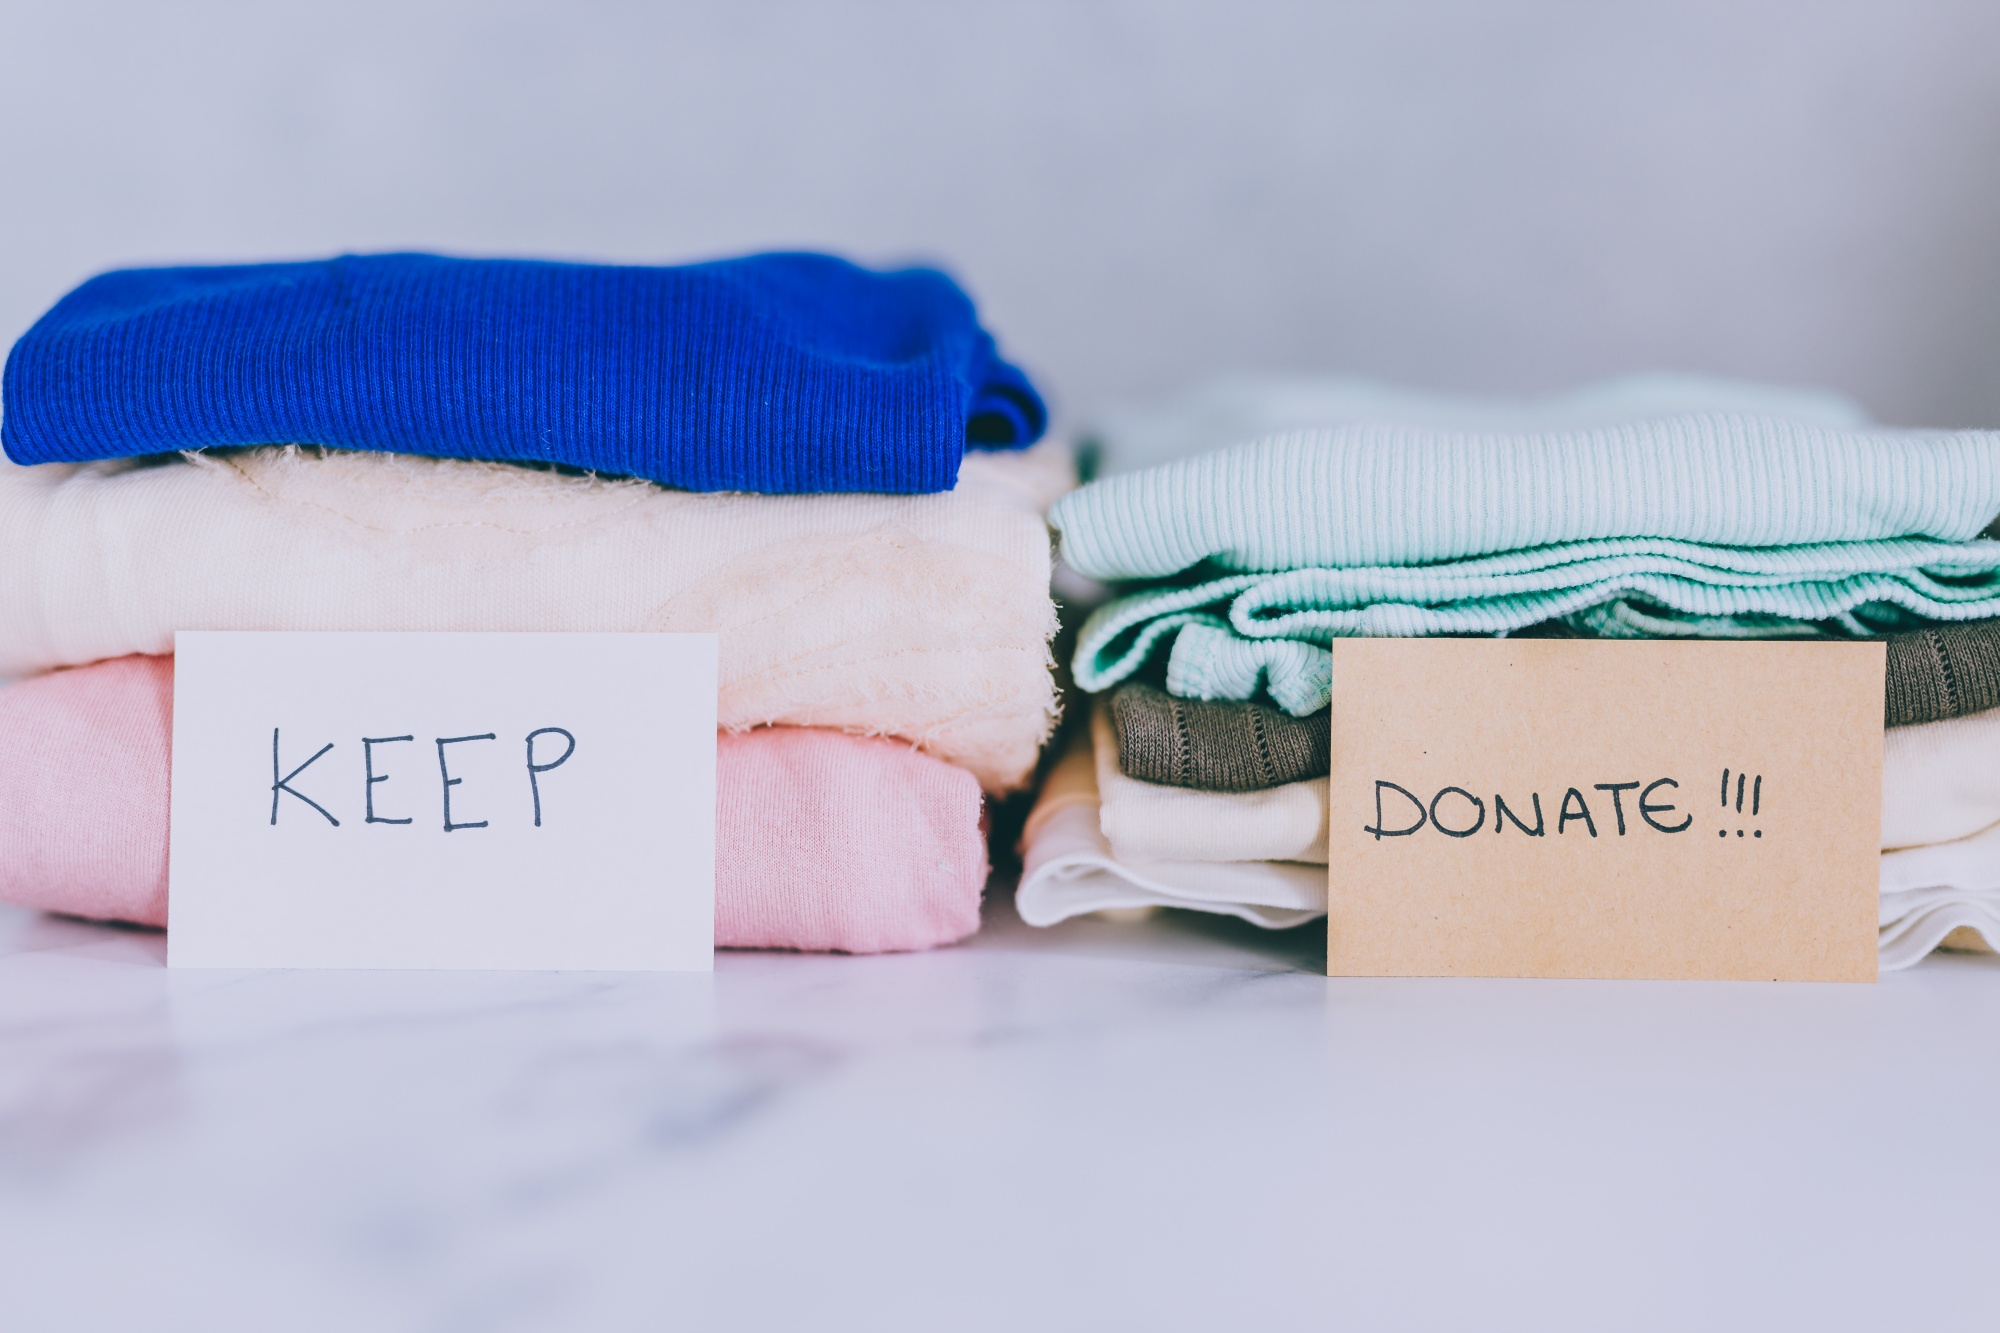 The Best Way To Get Organized Before Holiday Chaos Ensues by organzing stacks of clothing to donate vs those to keep